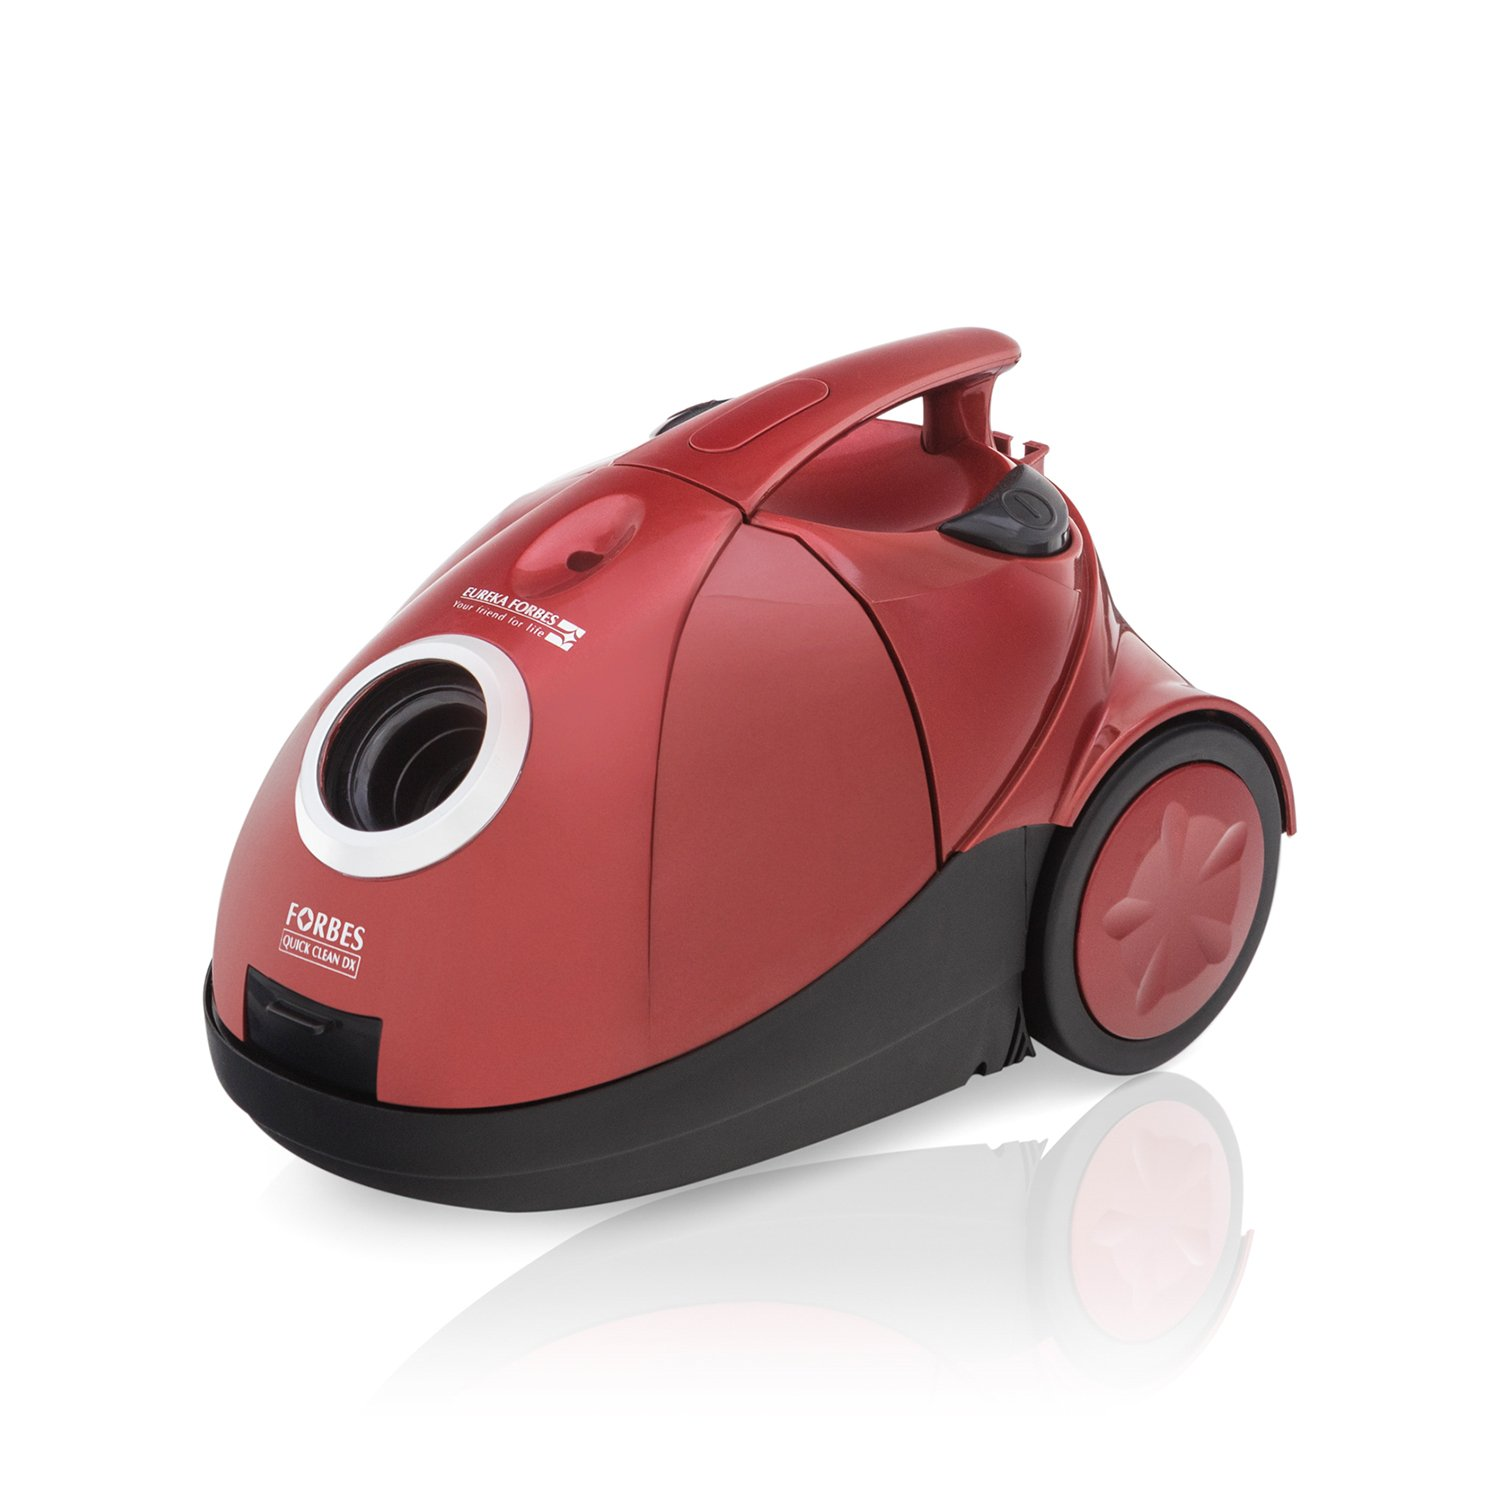 Eureka Forbes Quick Clean DX 1200-Watt Vacuum Cleaner (Red) with Free 3 Dust Bags By Amazon @ Rs.3,488